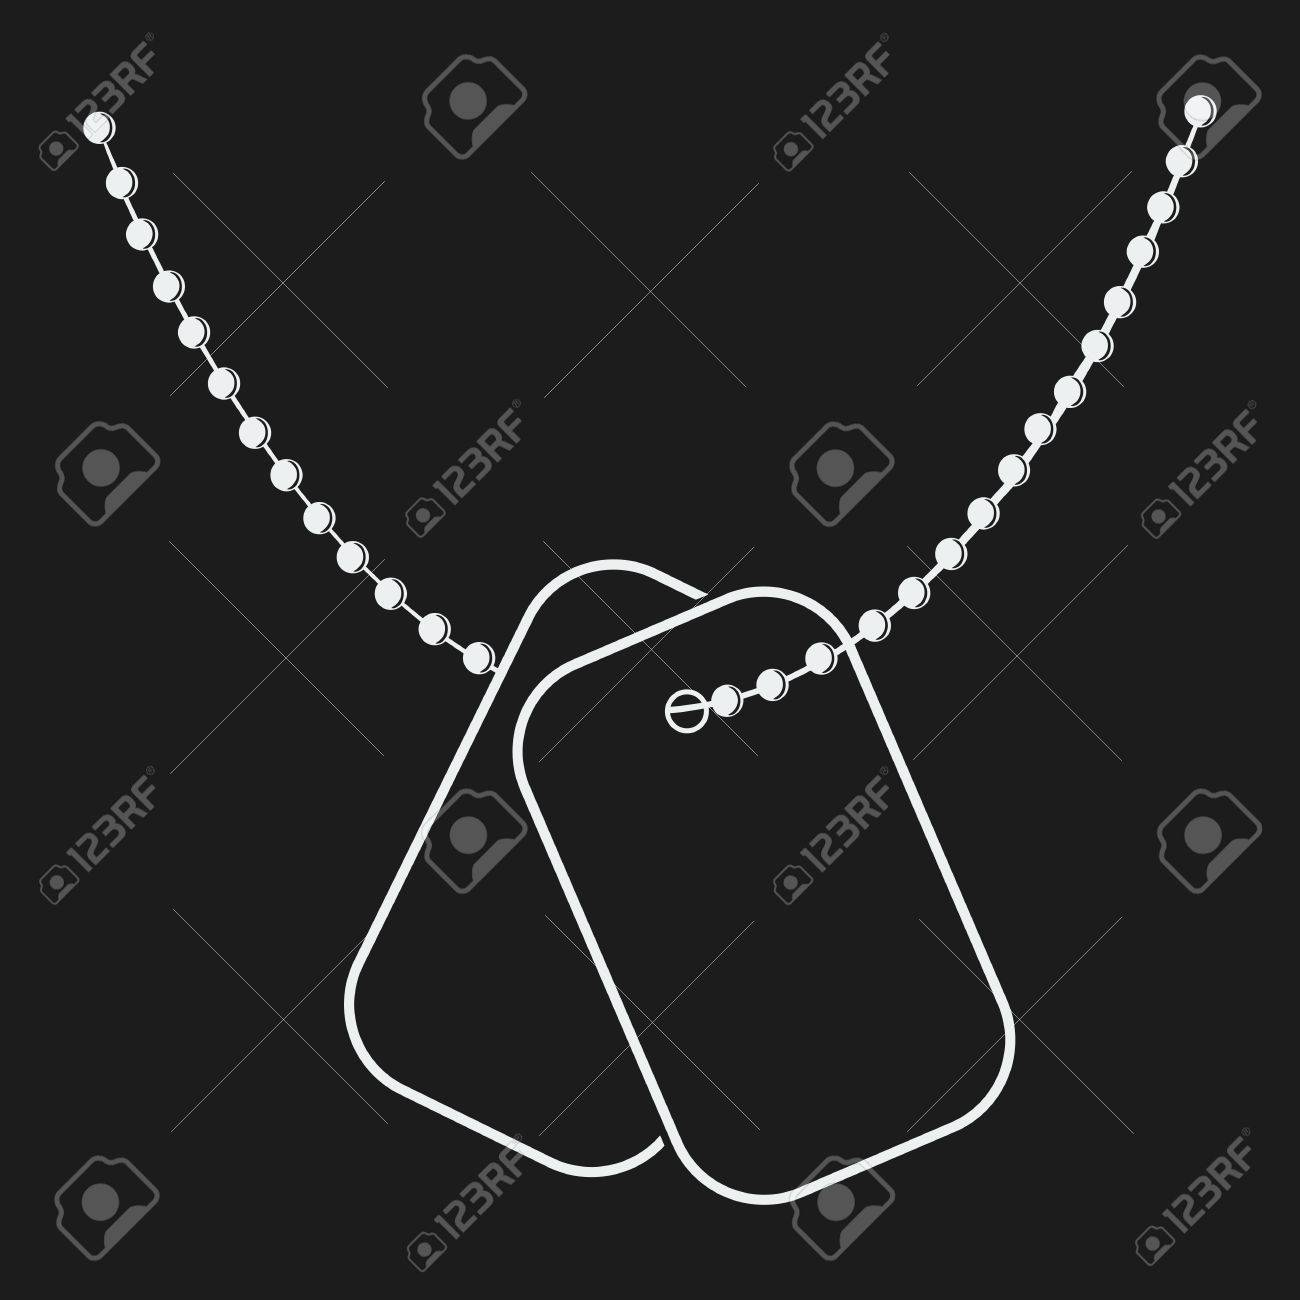 Dog Tags With Chain Icon Isolated On Black Background Vector